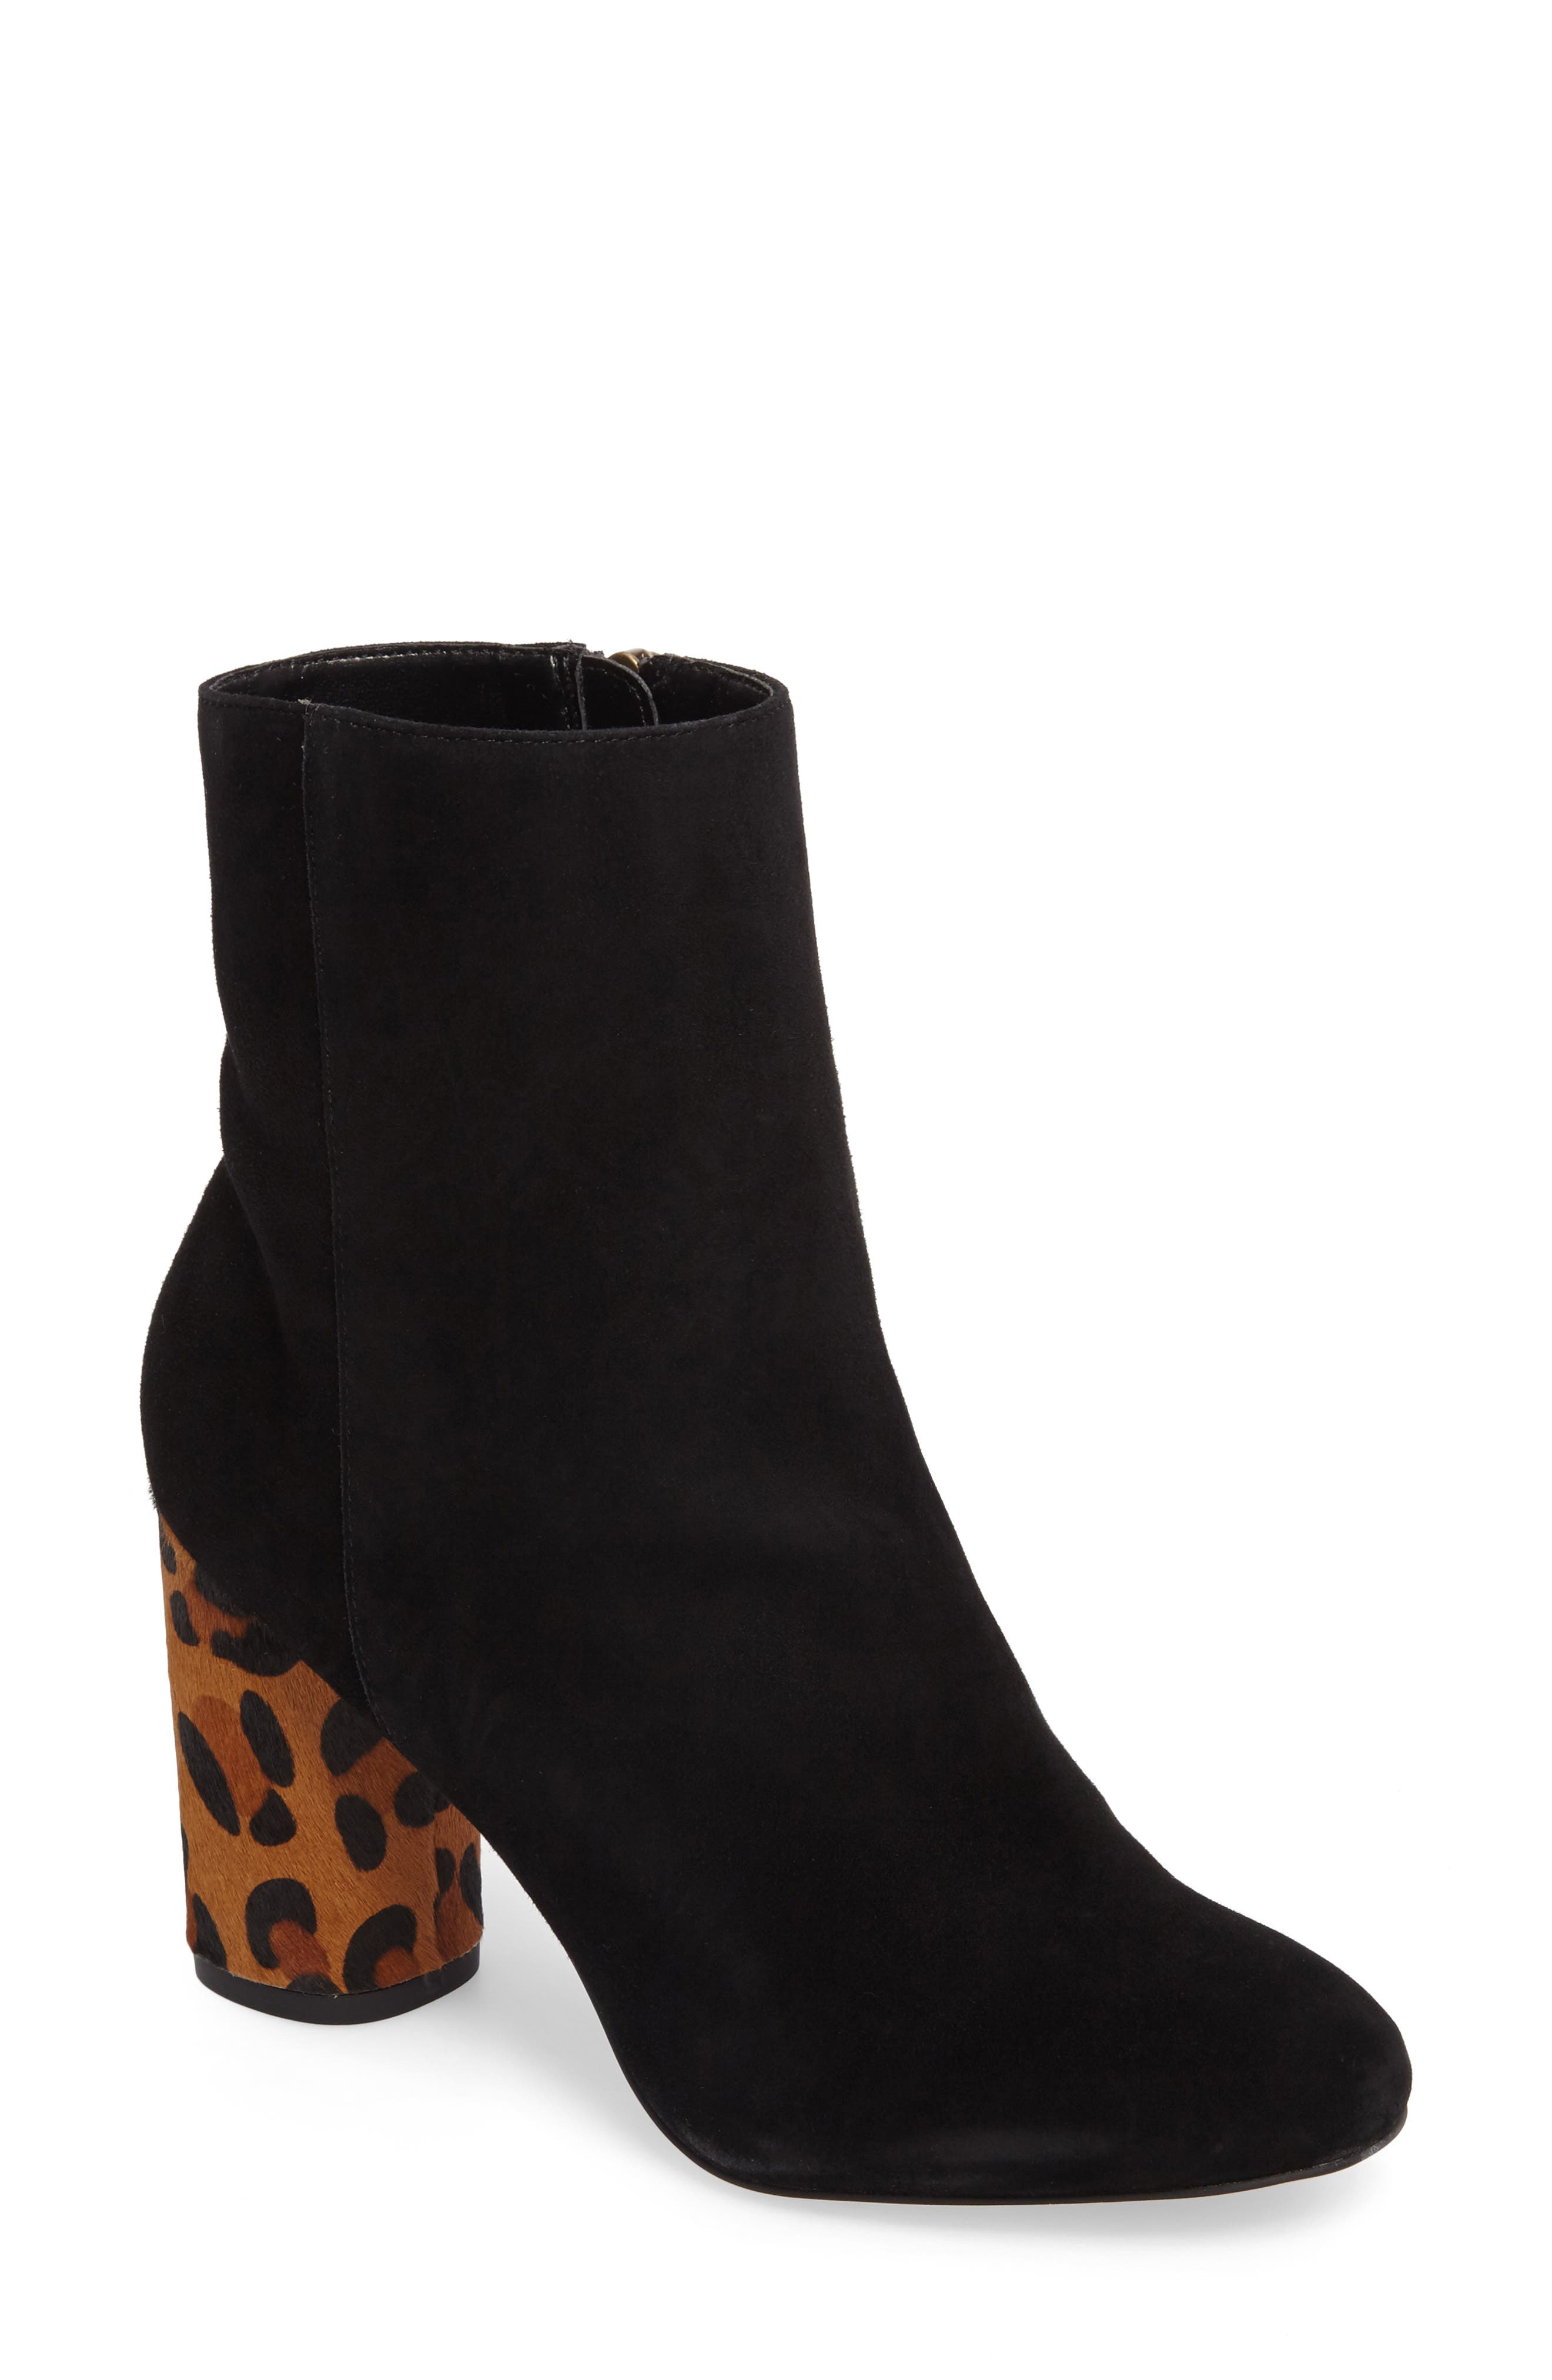 Mulholland Embroidered Boot,                             Main thumbnail 1, color,                             Black With Leopard Heel